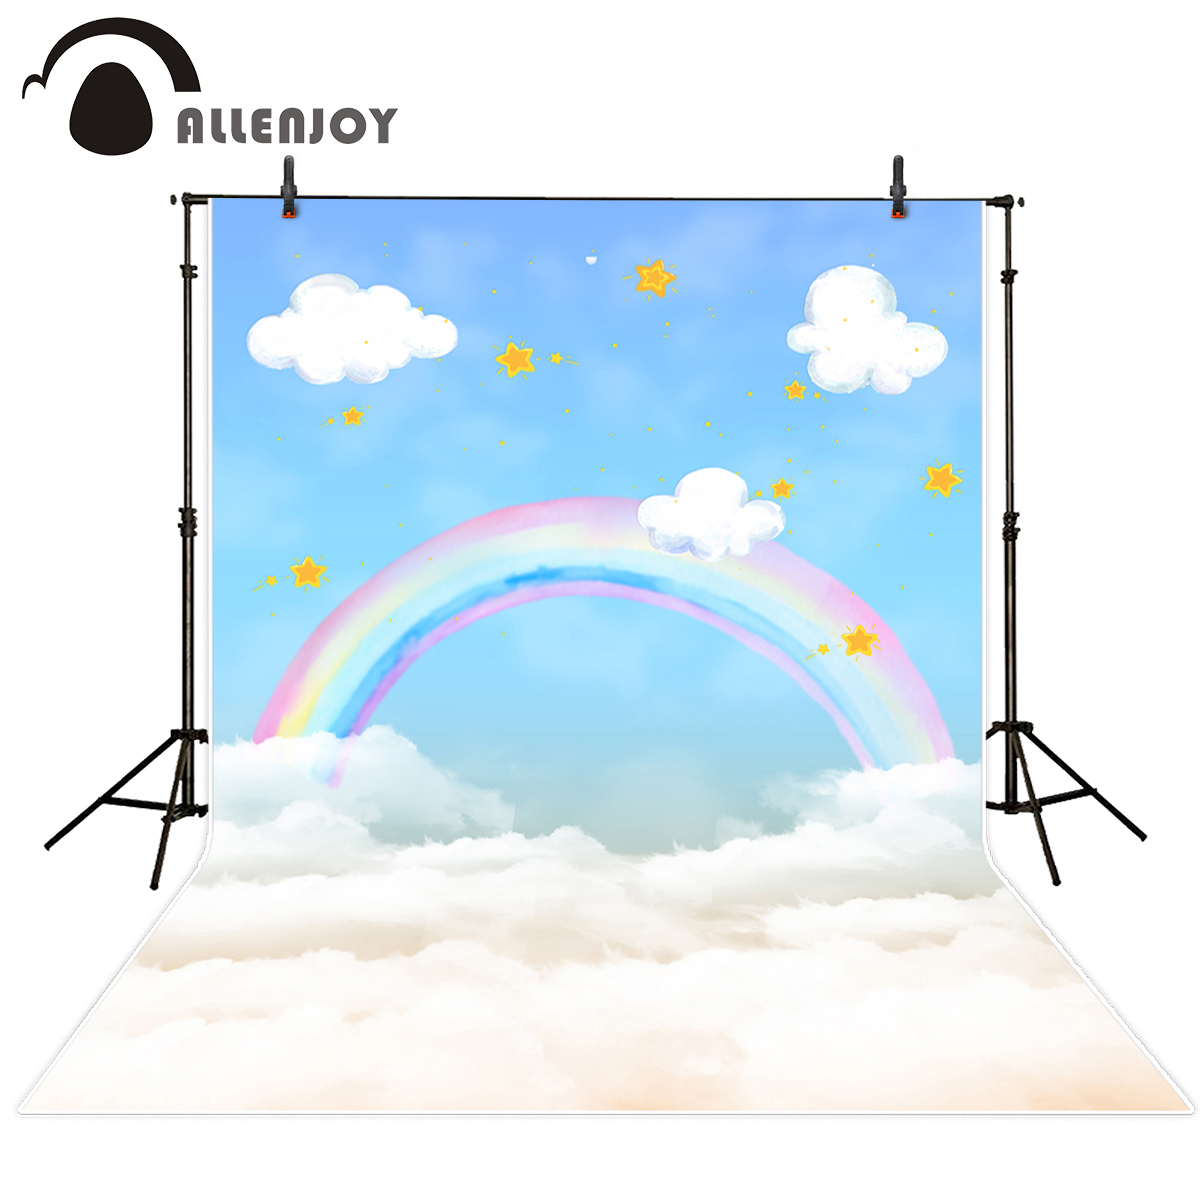 Allenjoy Vinyl photography The sky Stars Gold Rainbow cloud photography backdrop personal custom Partner name backdrop блендер vitek vt 1460 og